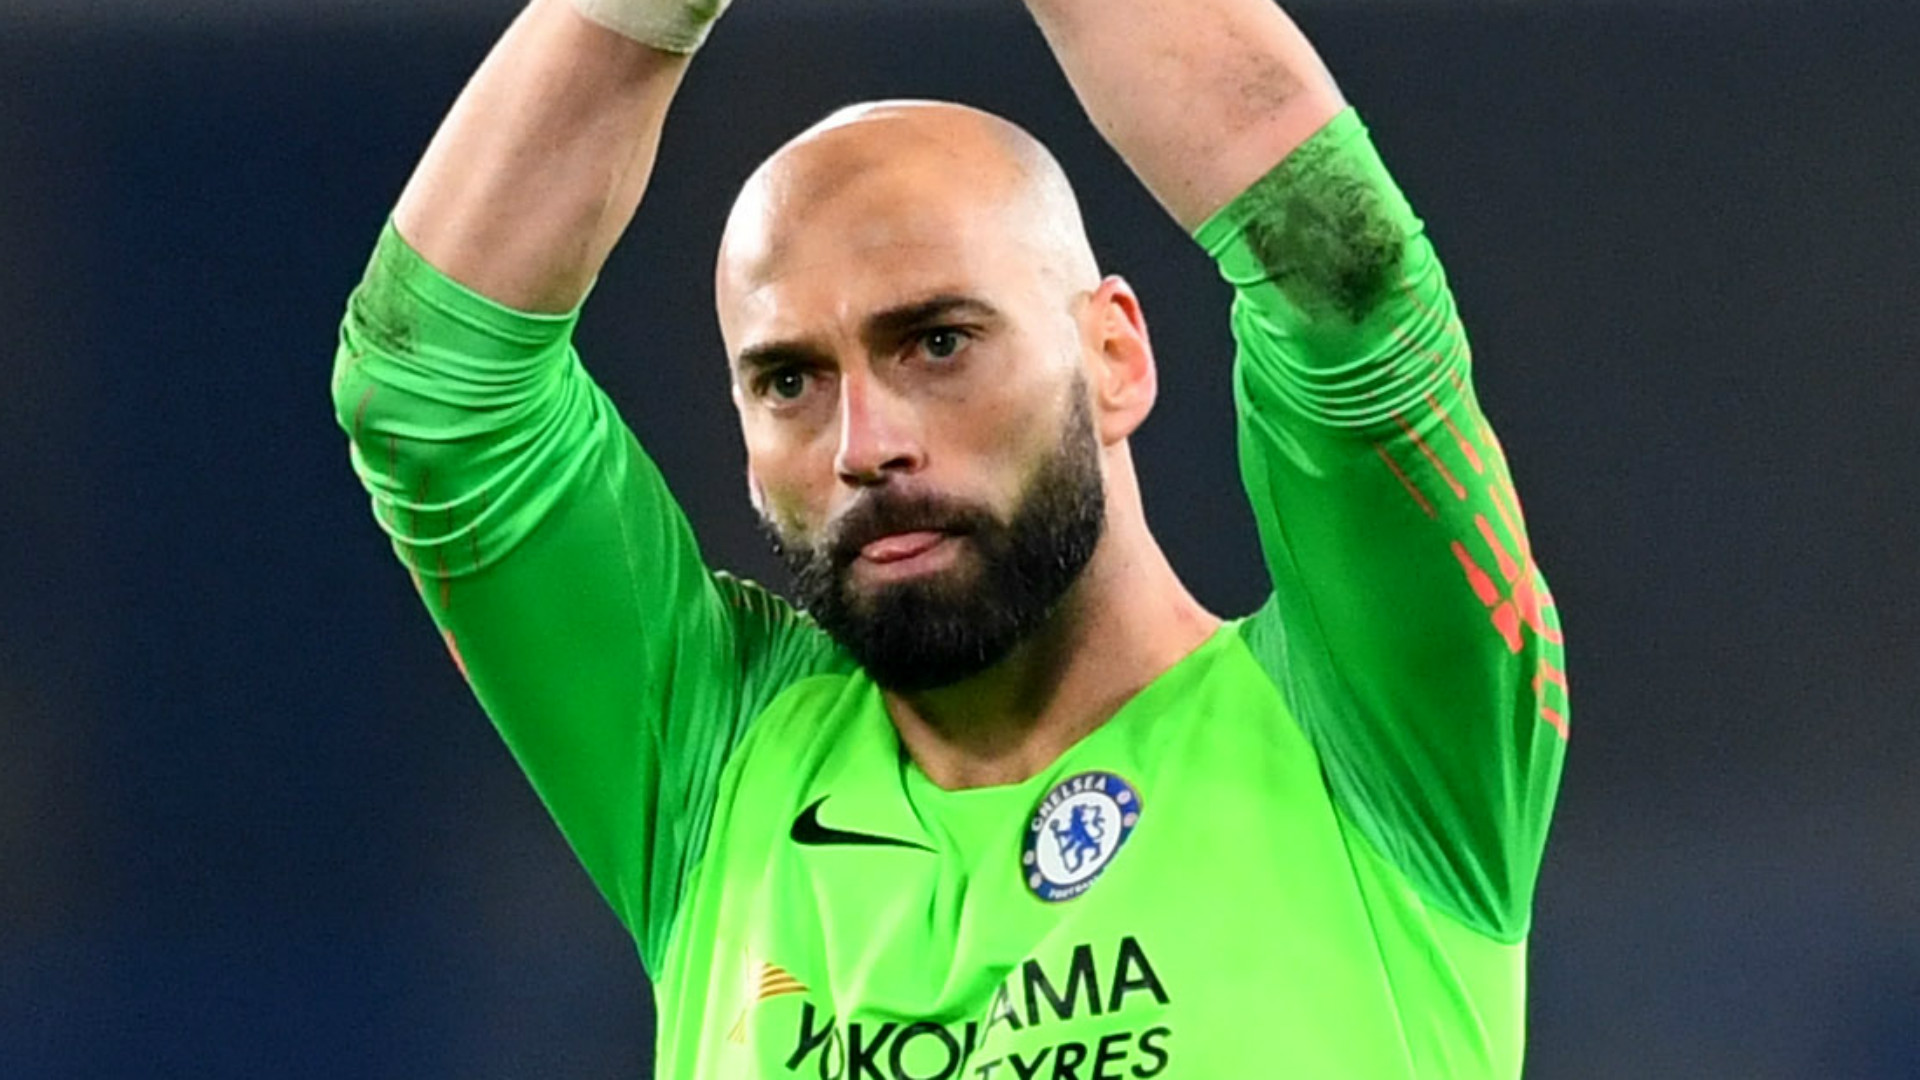 Chelsea goalkeeper Caballero: Contract extension a 'blessing and privilege'